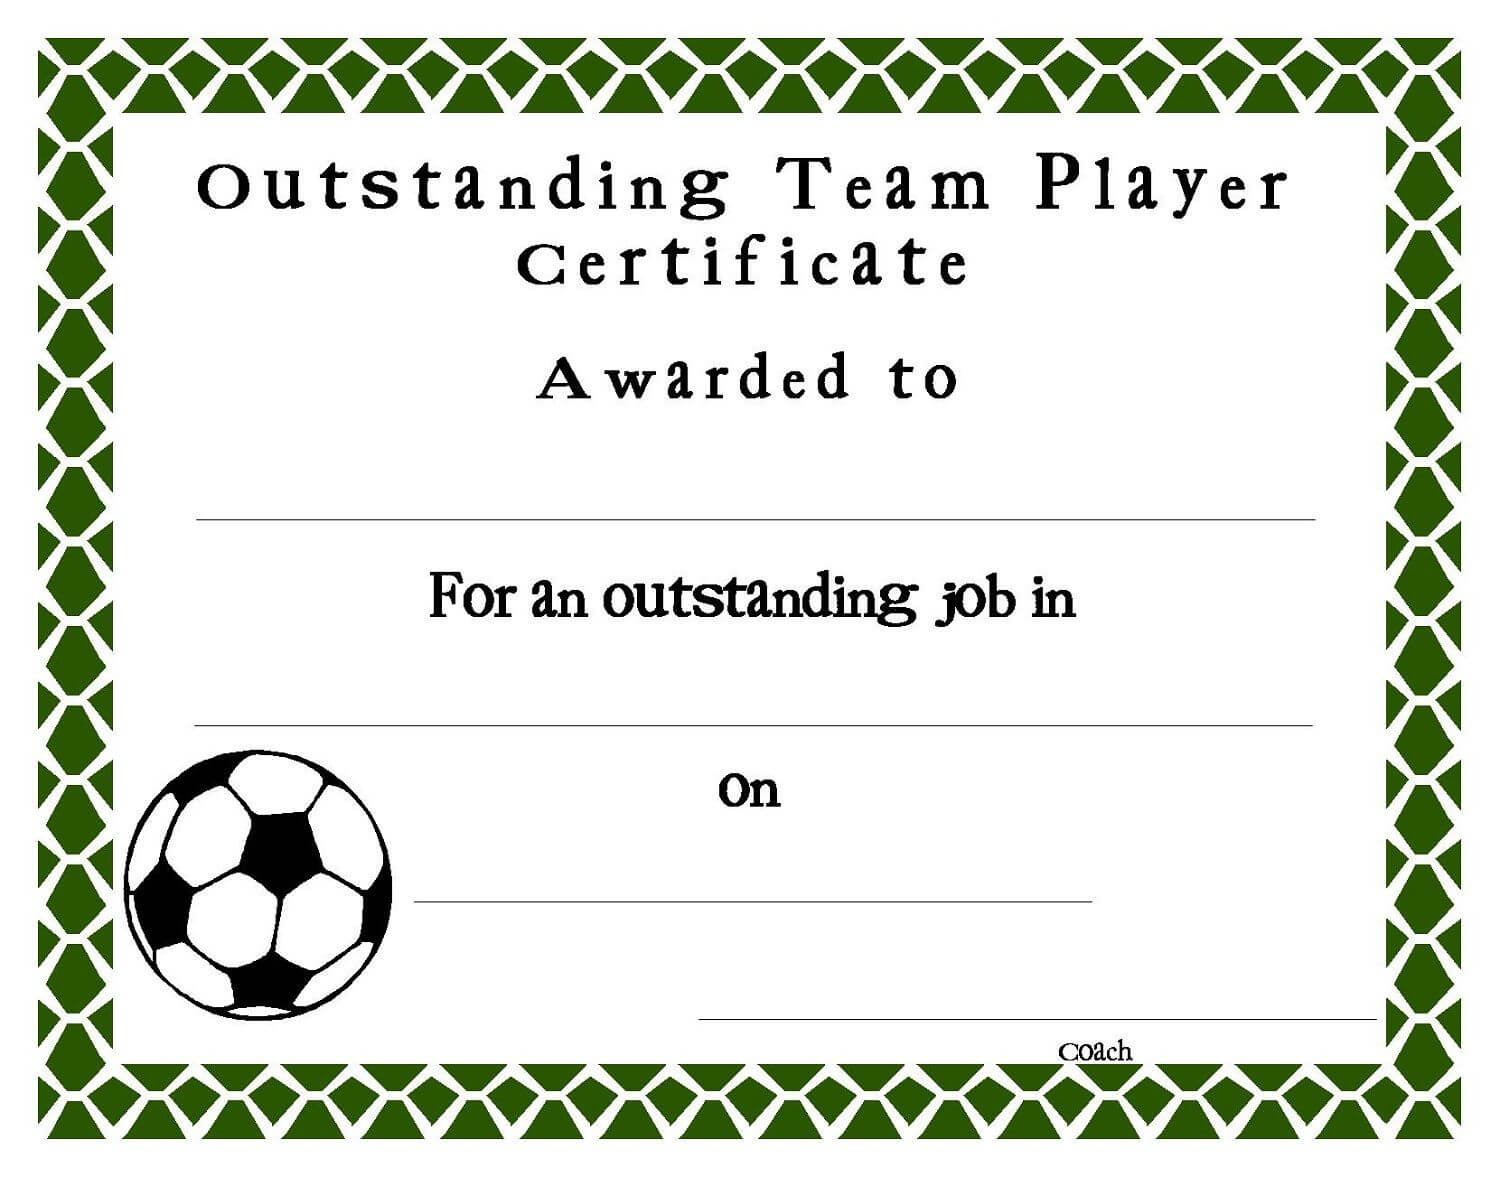 Soccer Certificate Templates Blank   K5 Worksheets with regard to Free Softball Certificate Templates